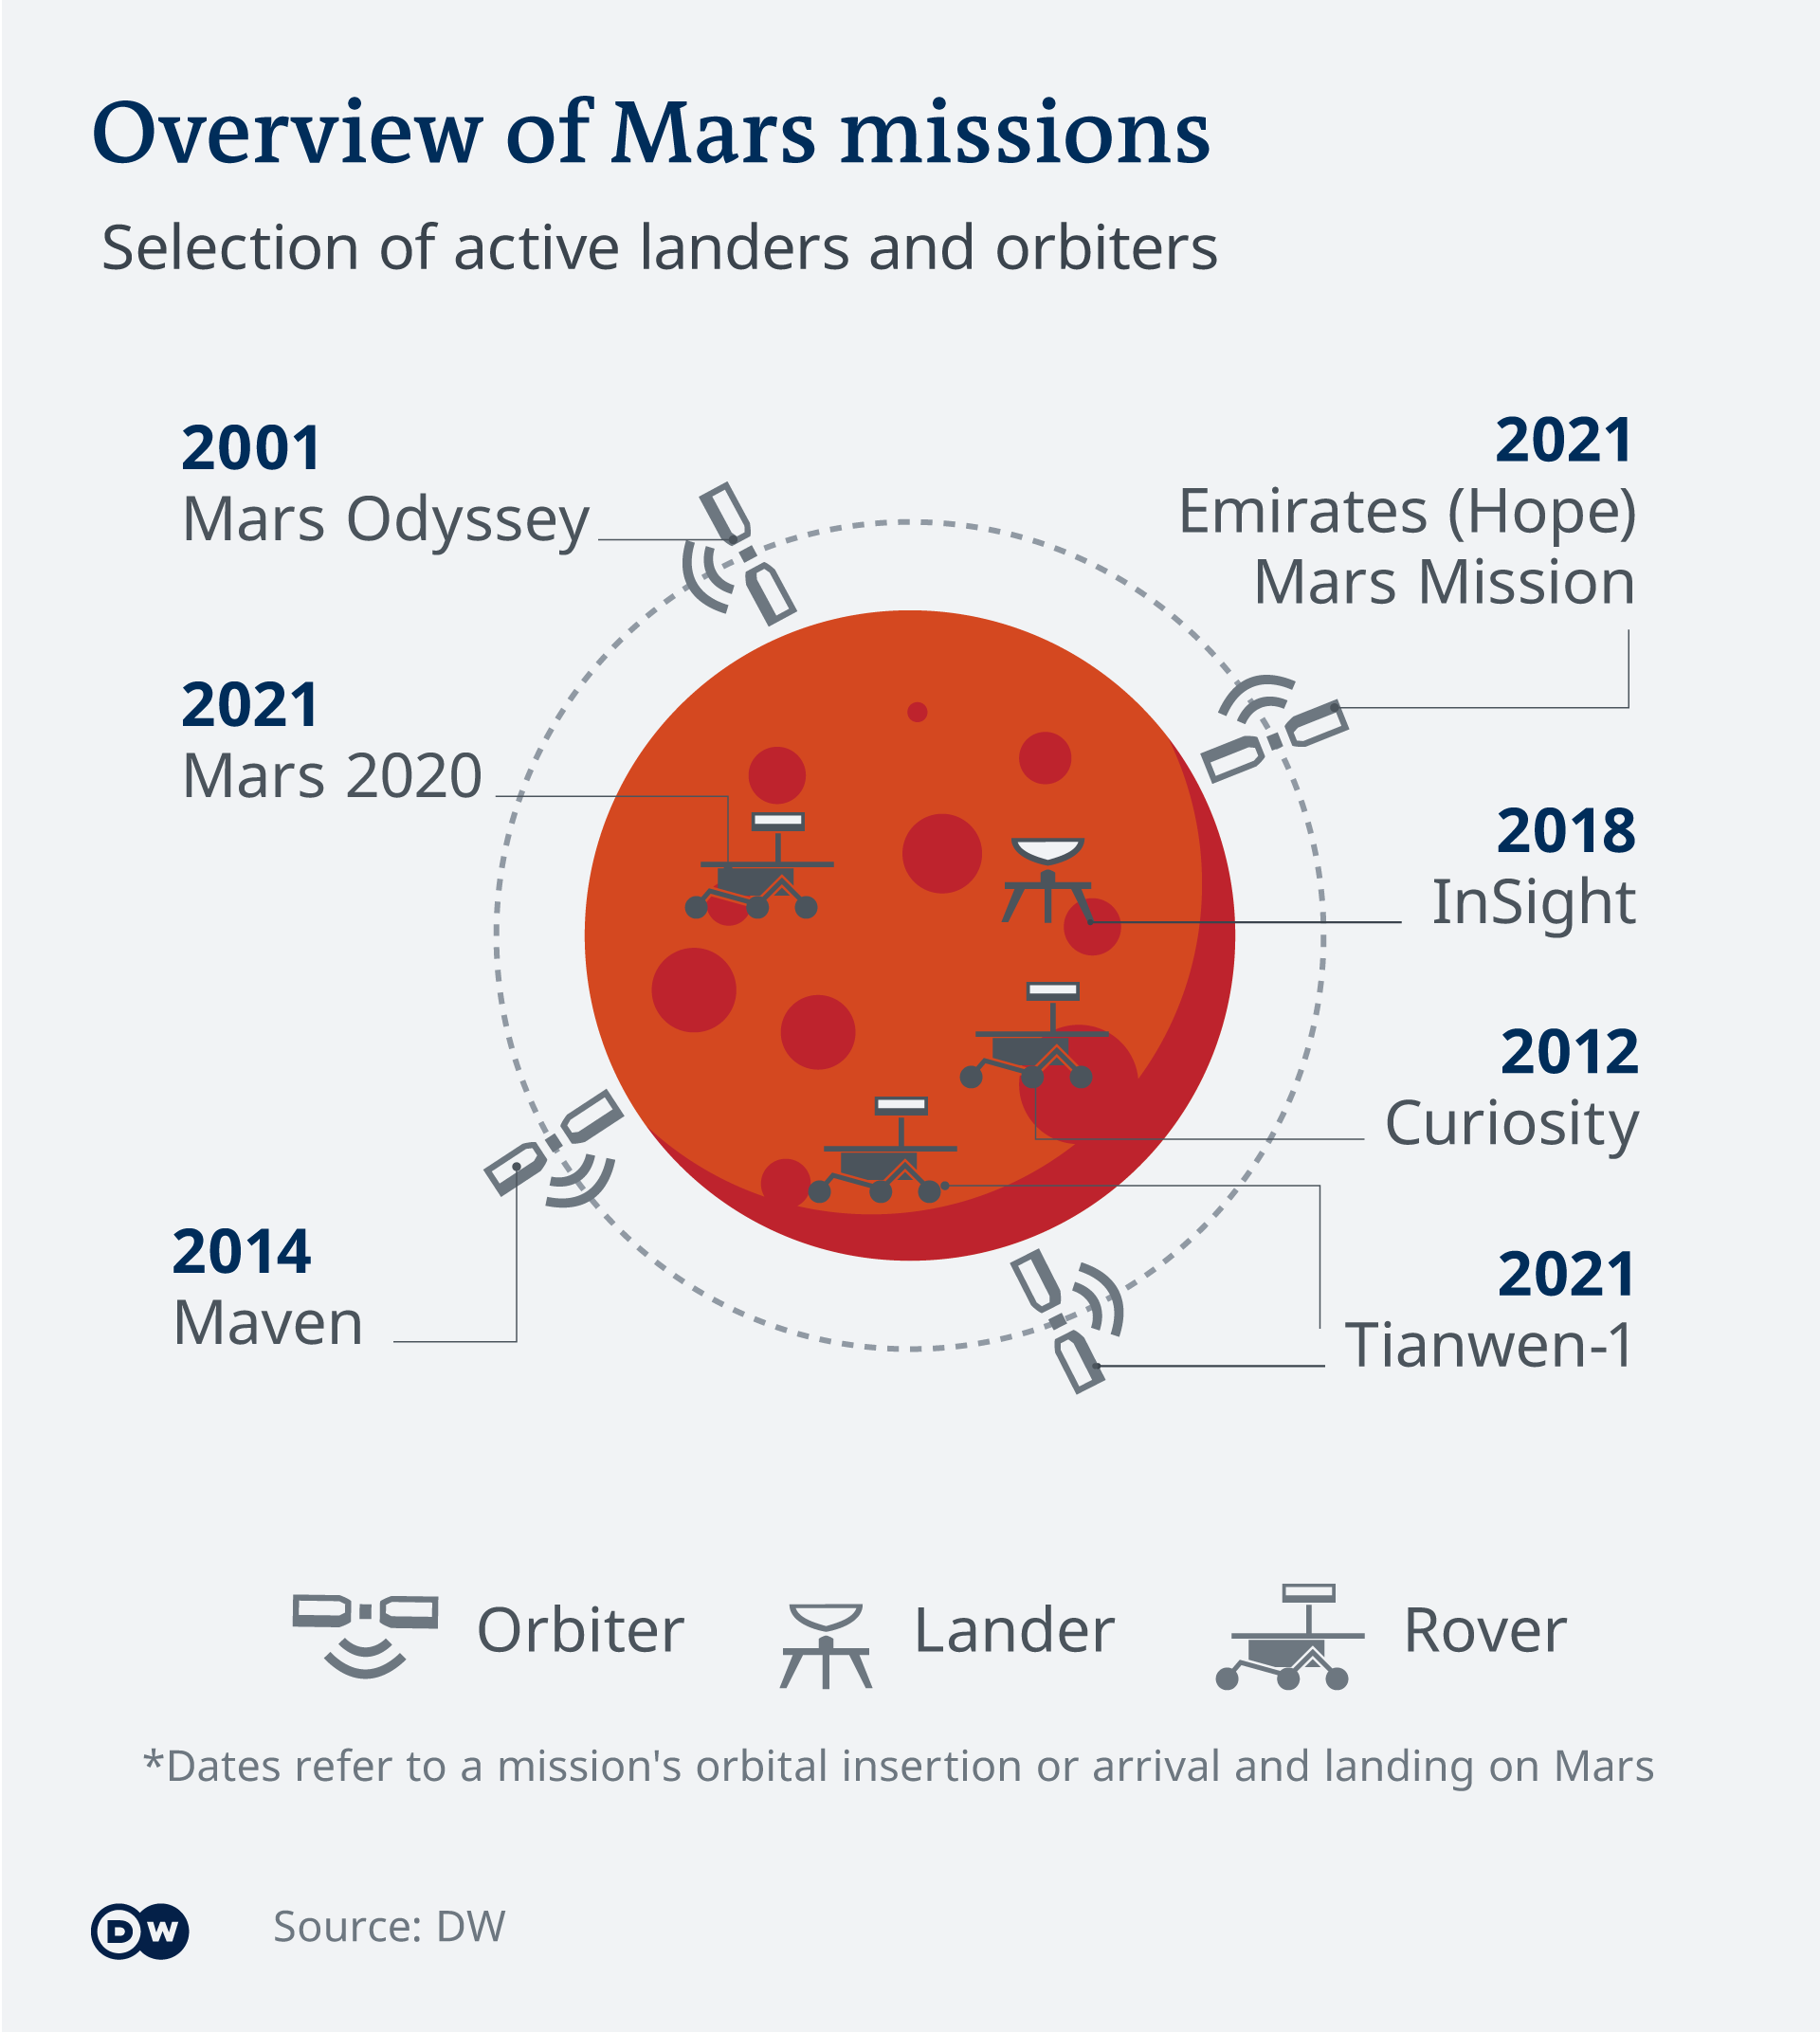 An infographic gives an overview of Mars missions